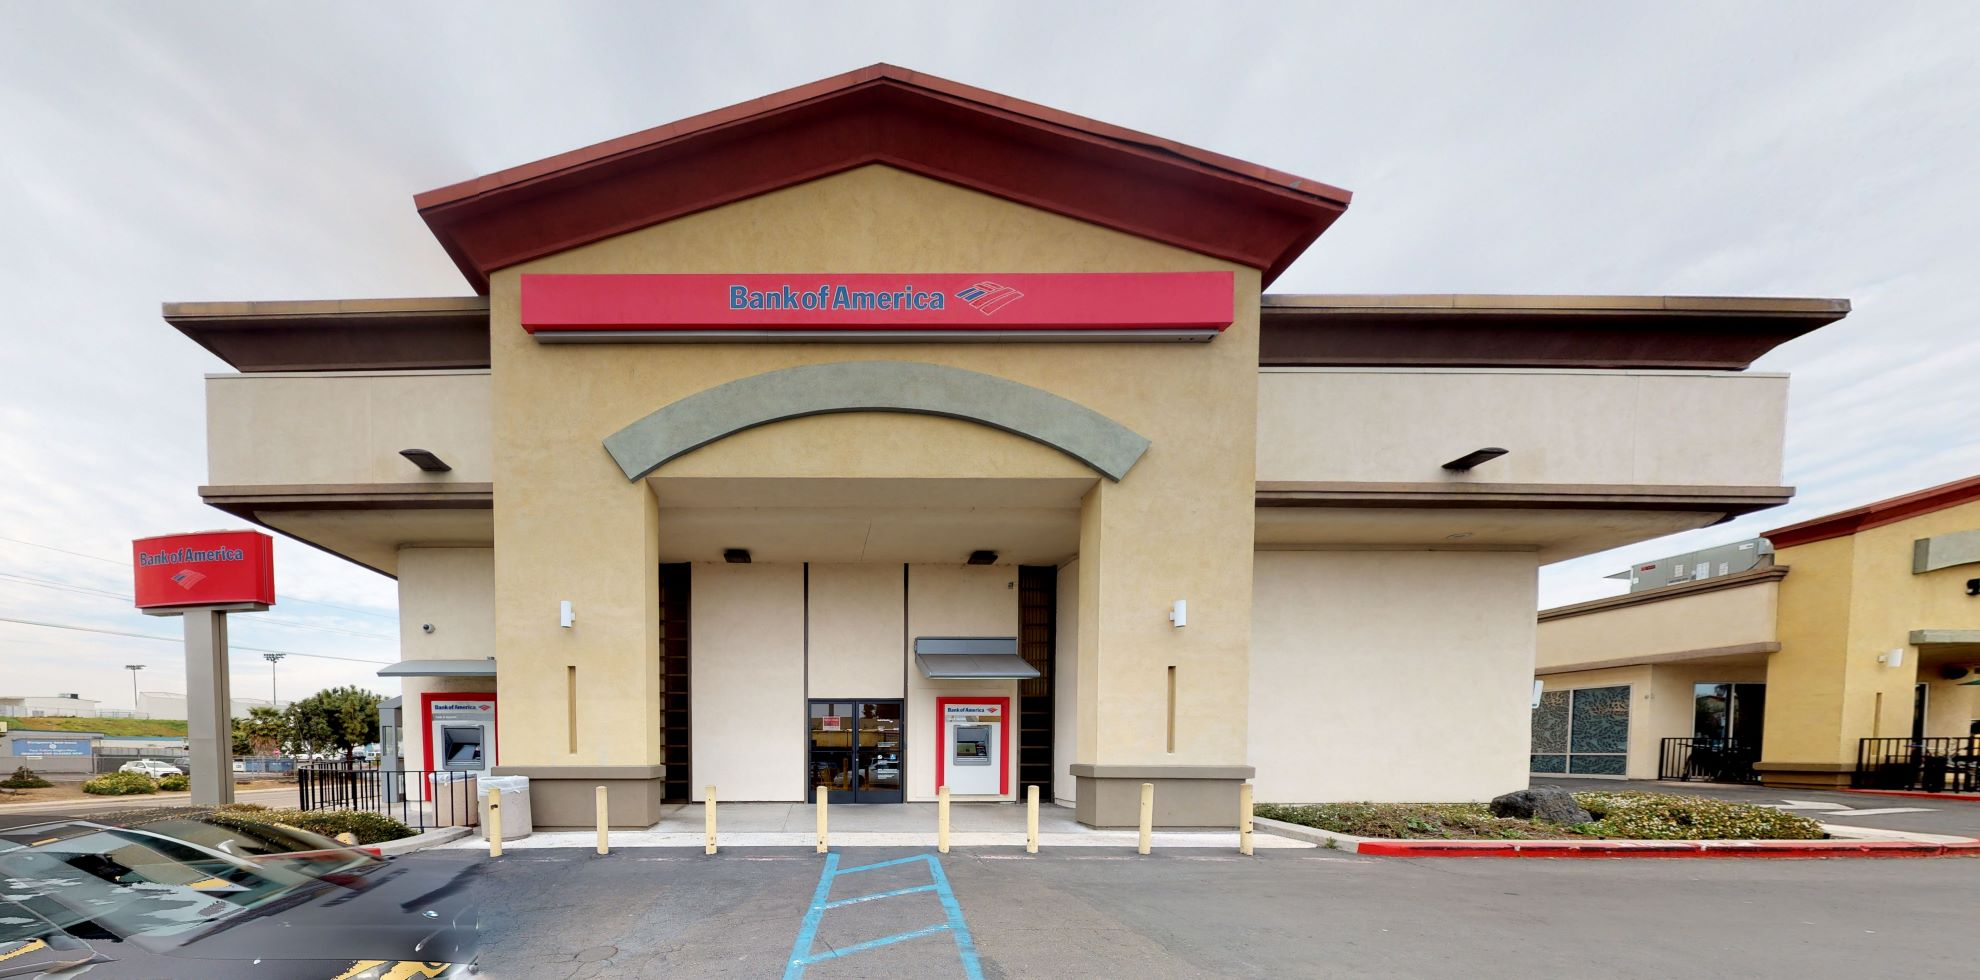 Bank of America financial center with walk-up ATM   645 Beyer Way, San Diego, CA 92154